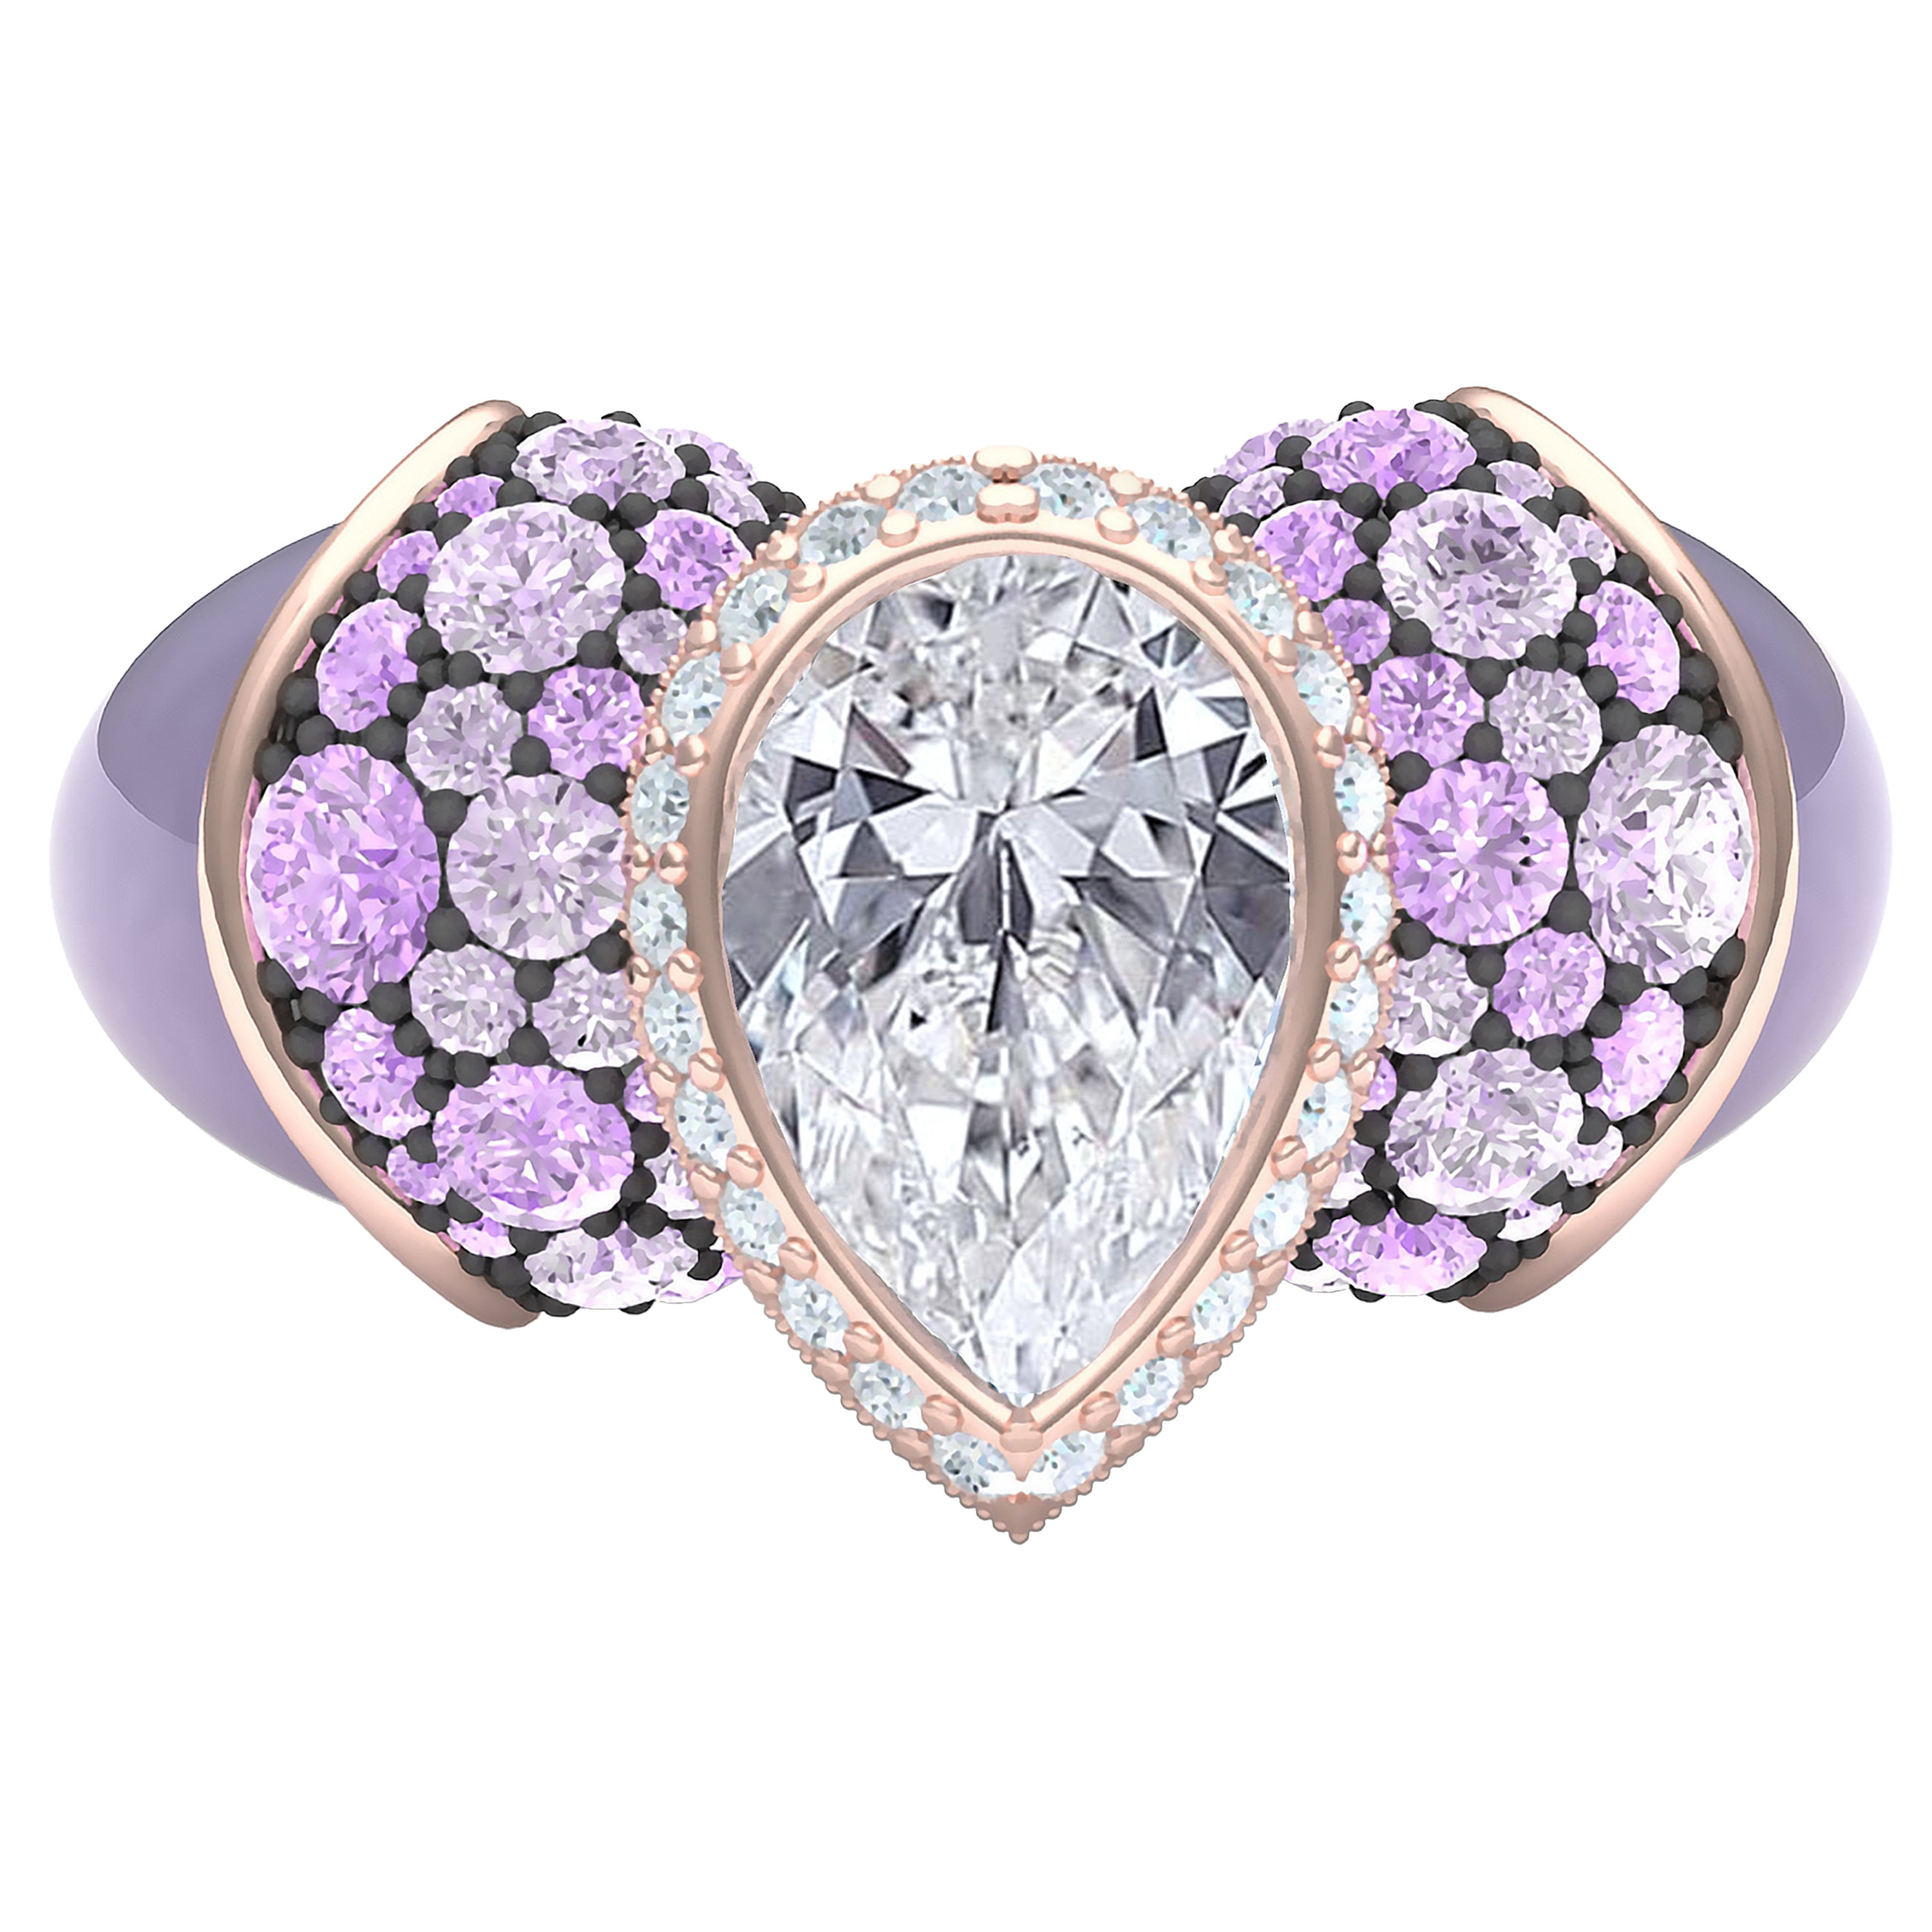 1 Carat Lavender Sapphire and Diamond Cocktail Ring